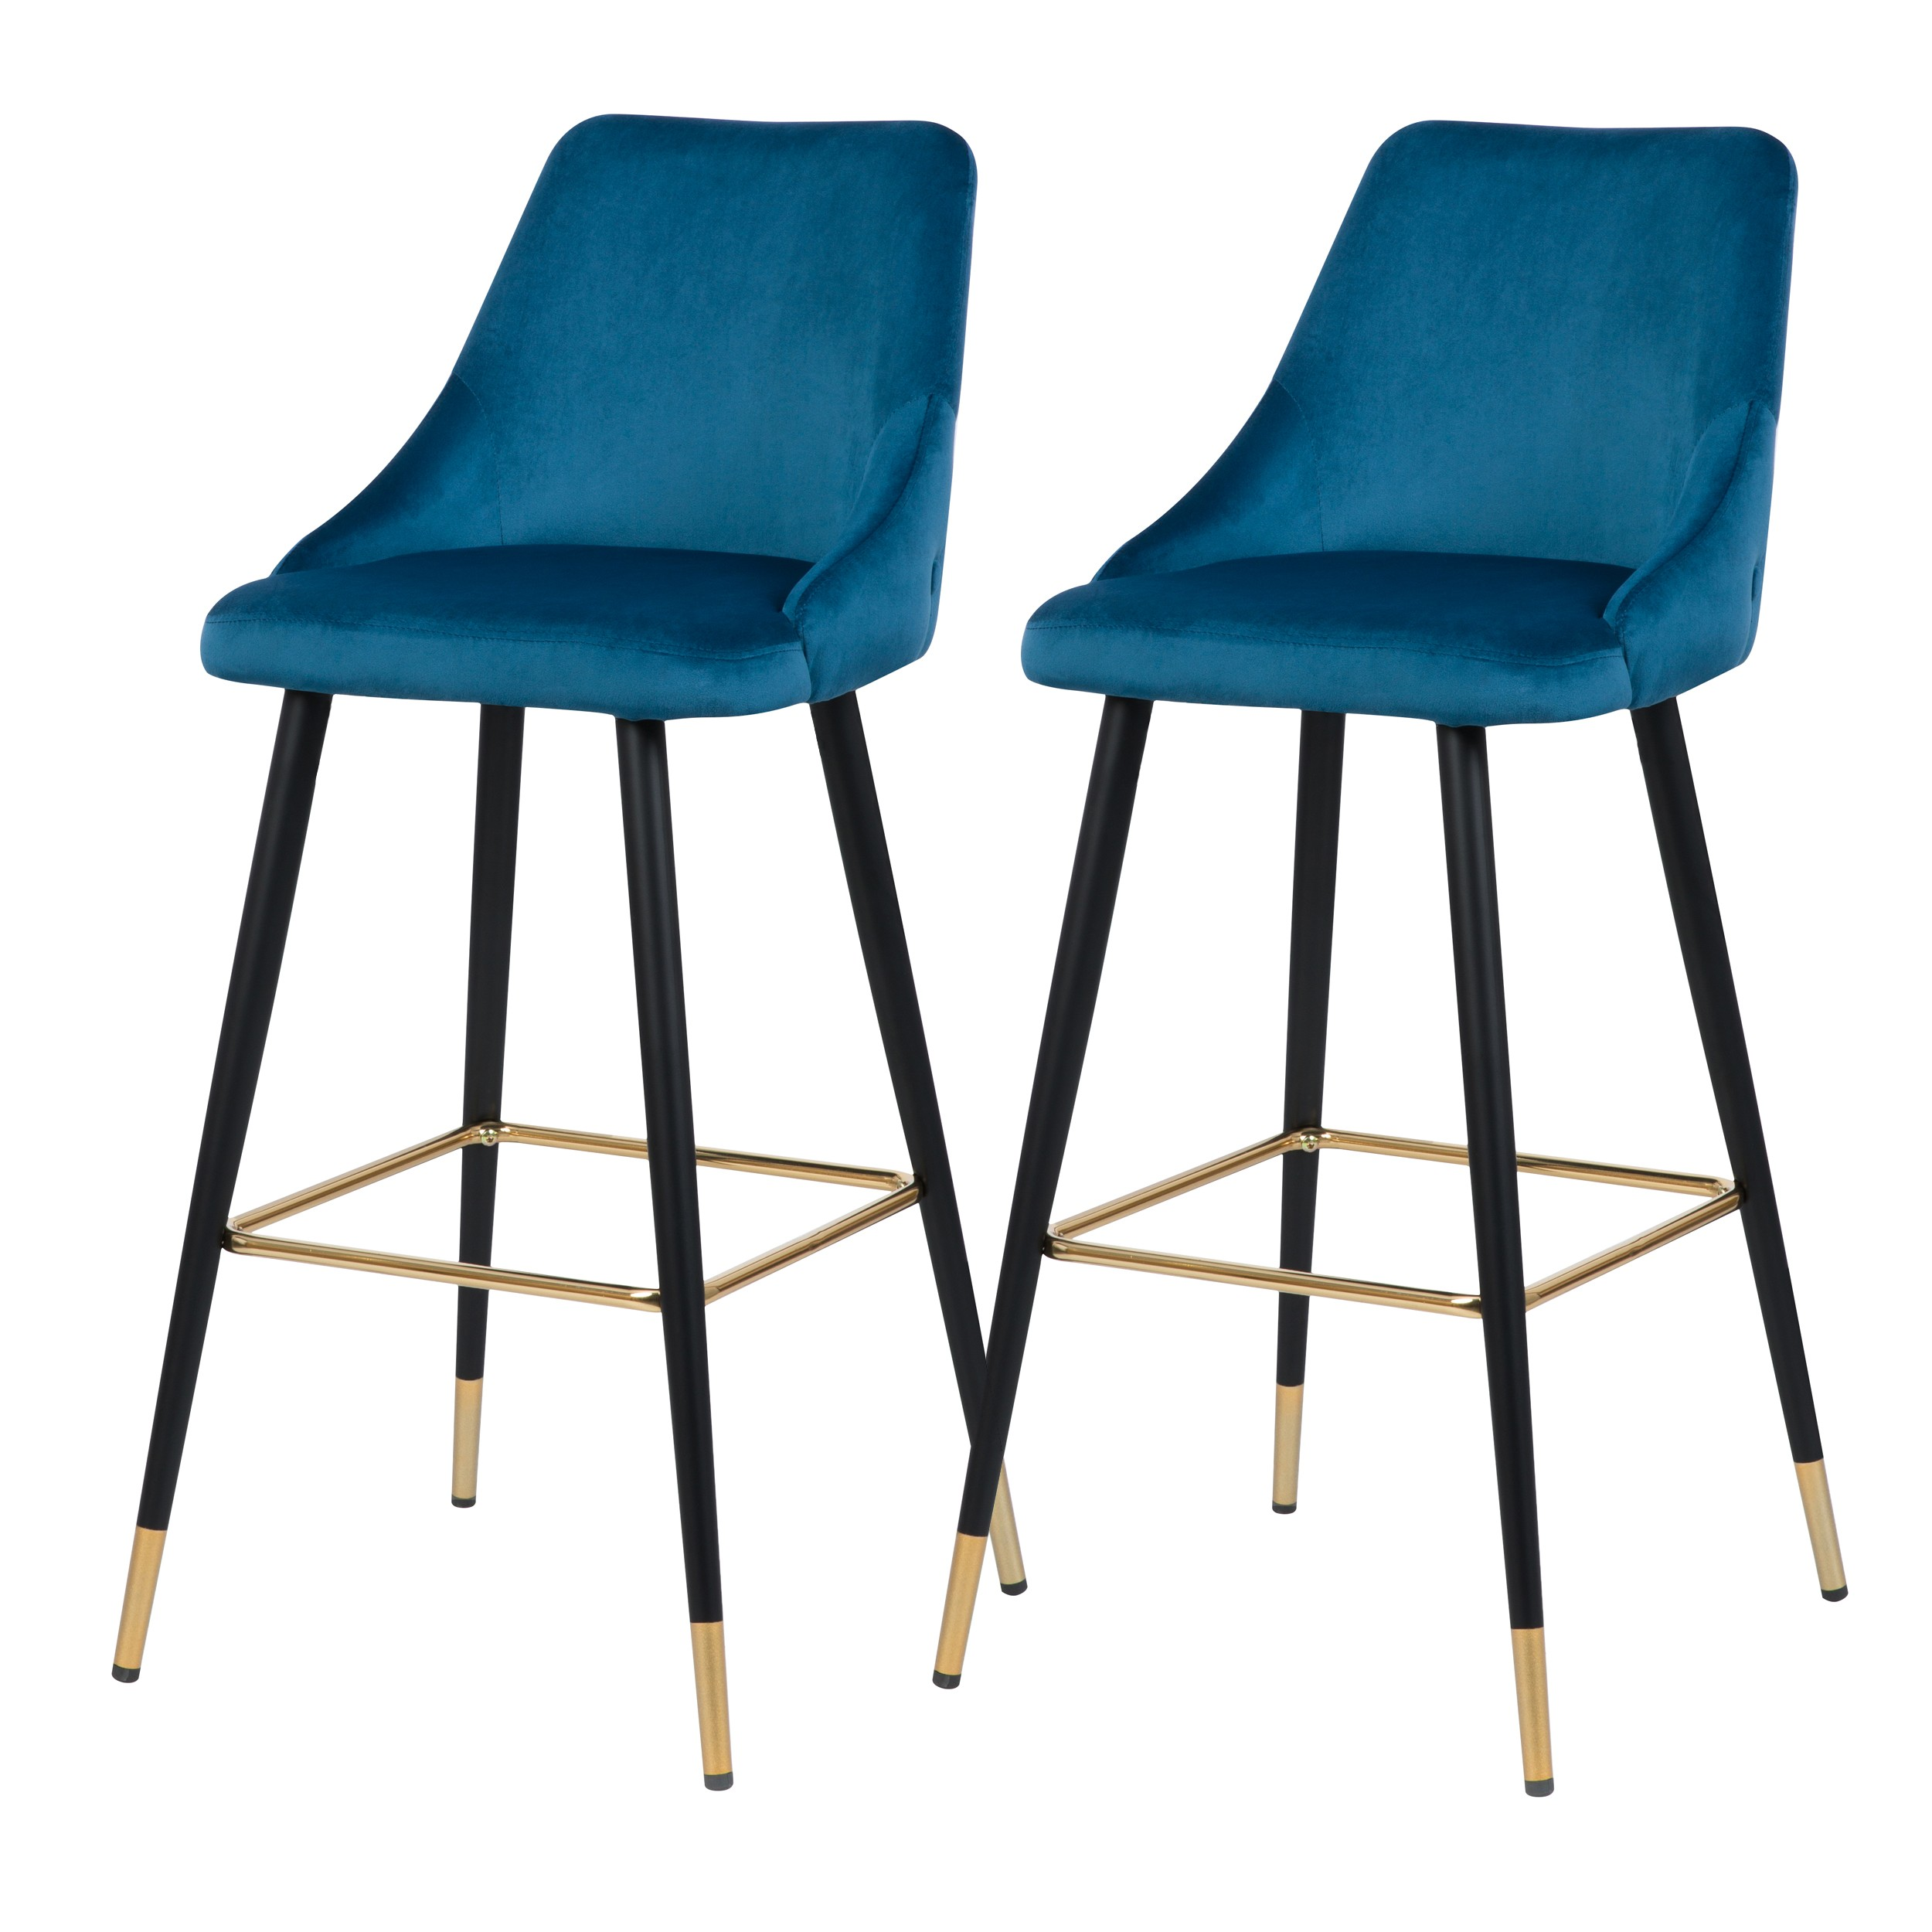 acheter chaise de bar lot de 2 velours